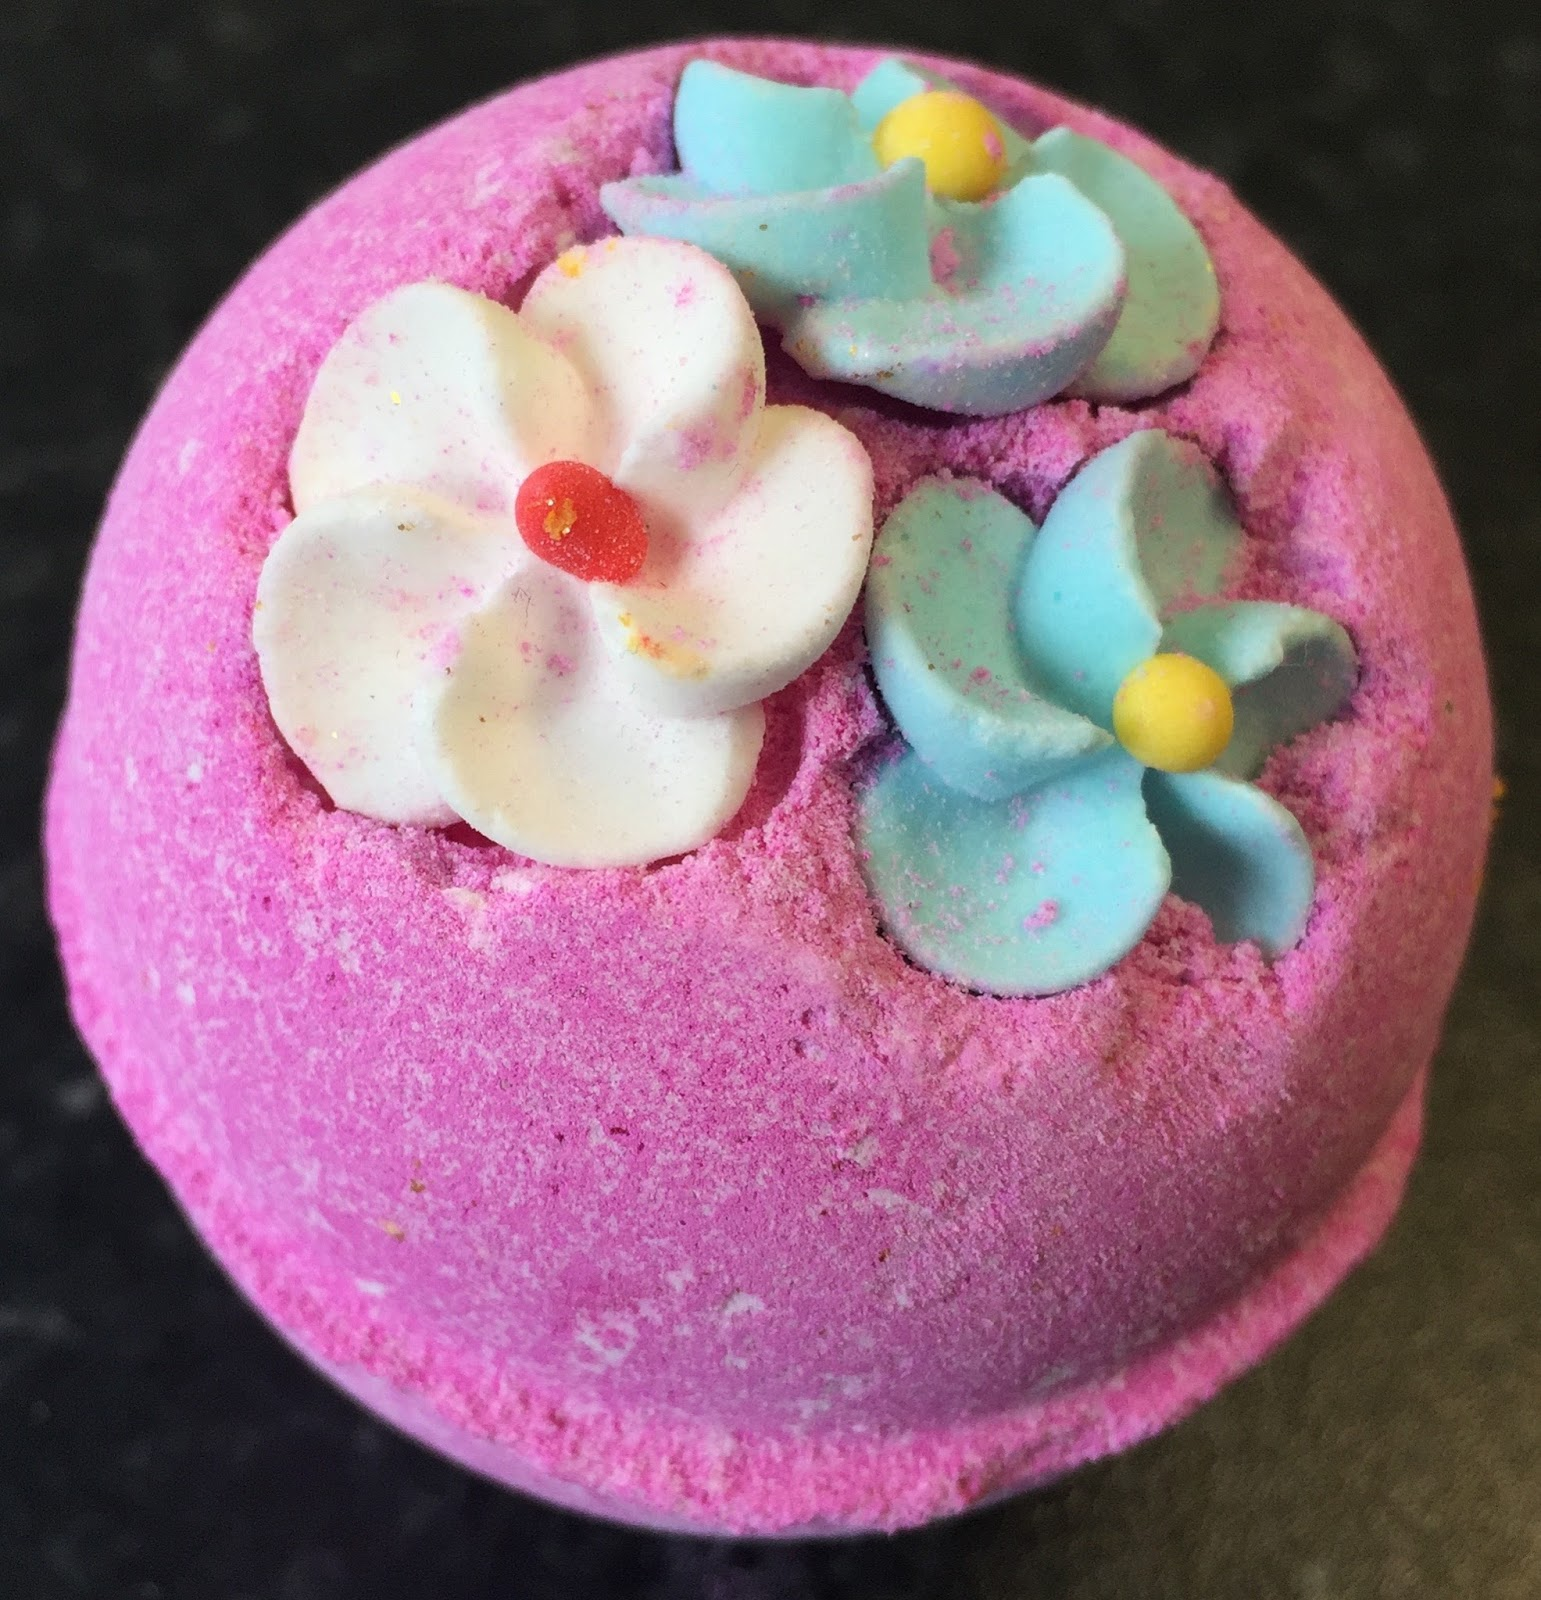 All Things Lush UK Think Pink Bath Bomb